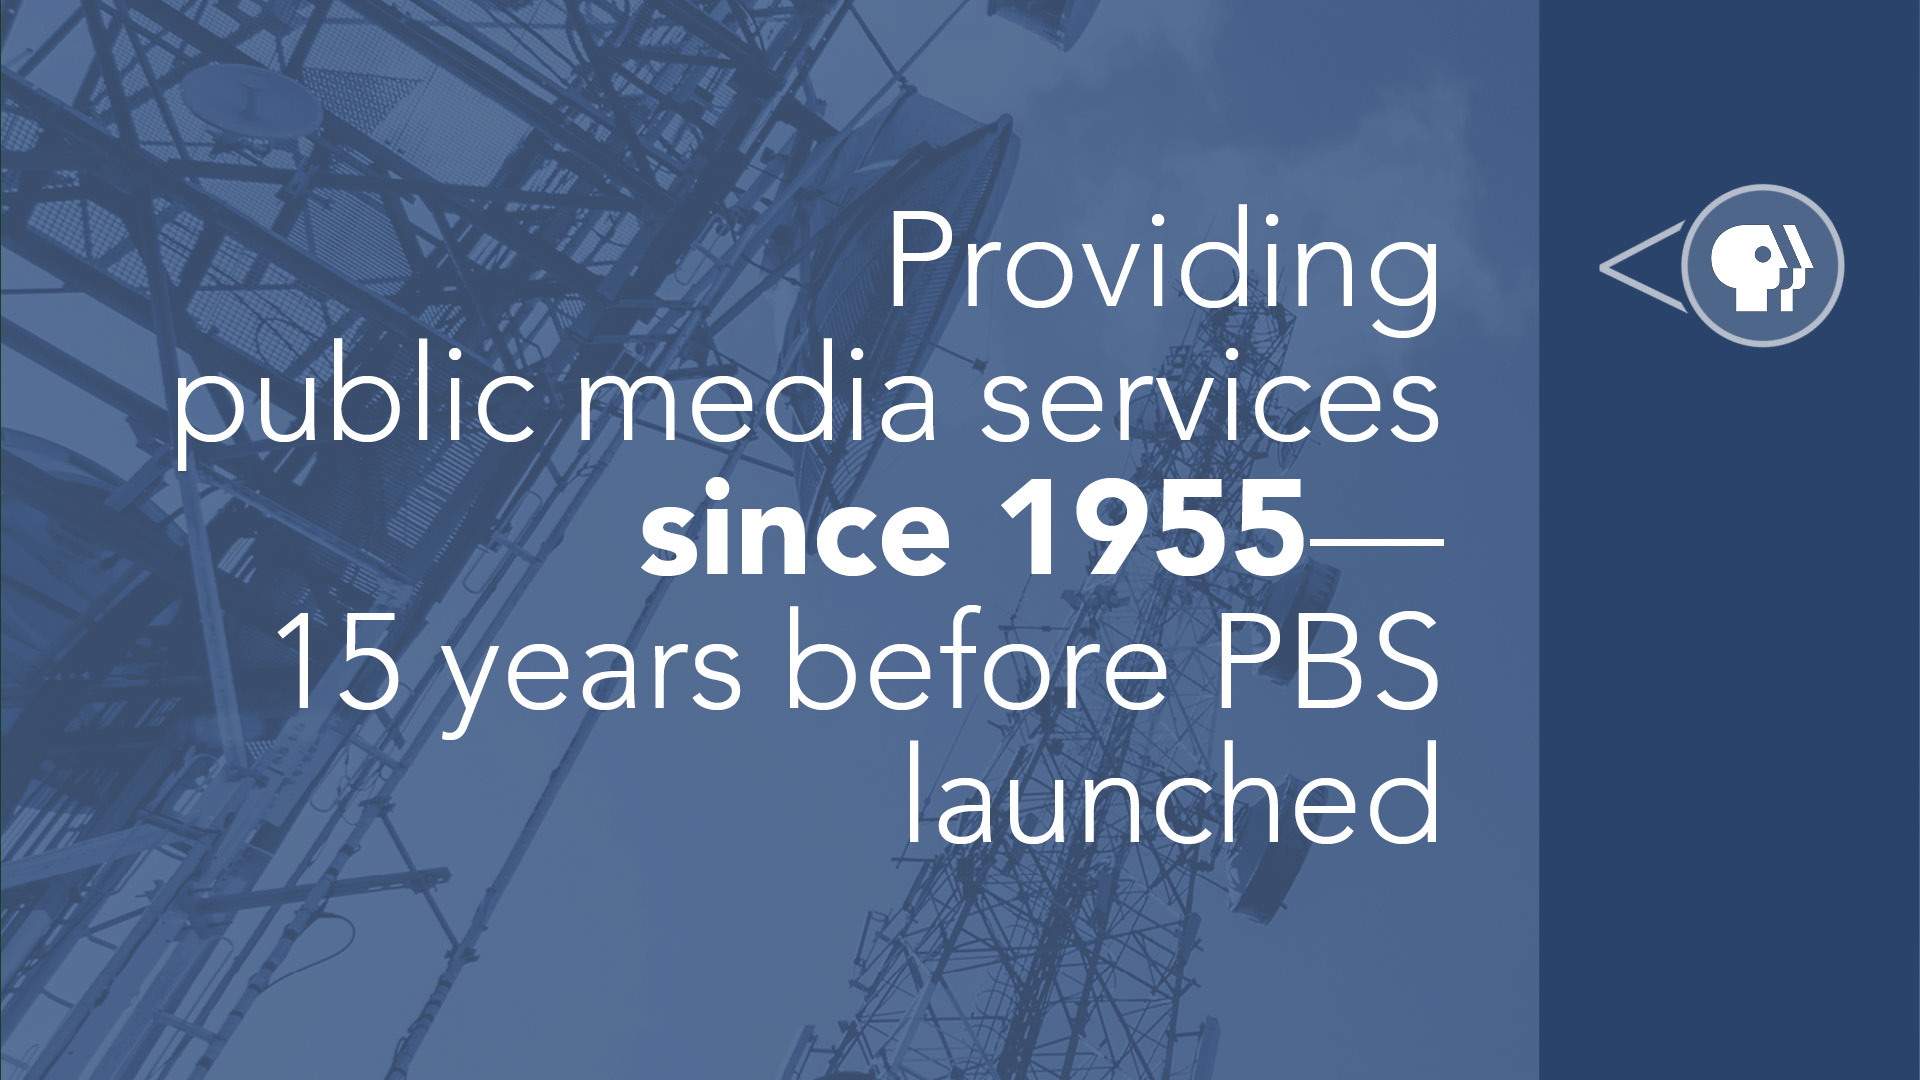 Providing public media services since 1955, 15 years before PBS launched